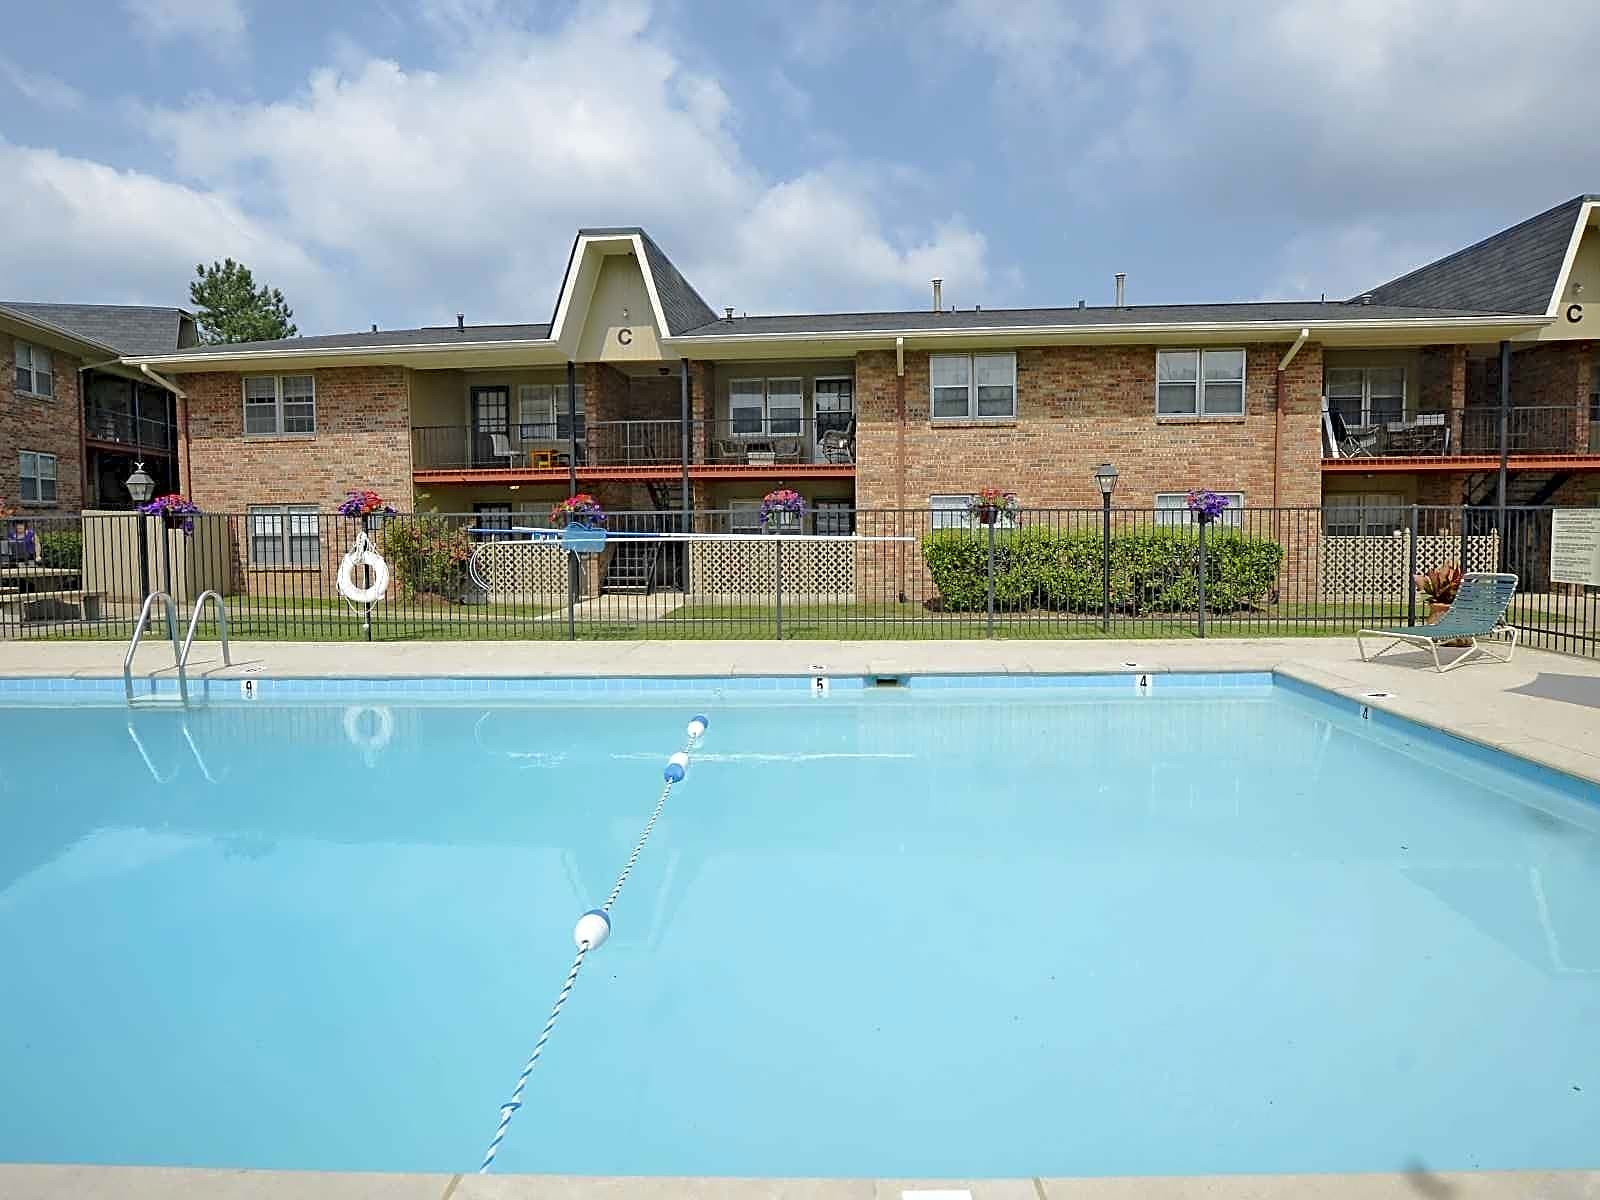 Apartments Near Lipscomb Bransford House for Lipscomb University Students in Nashville, TN